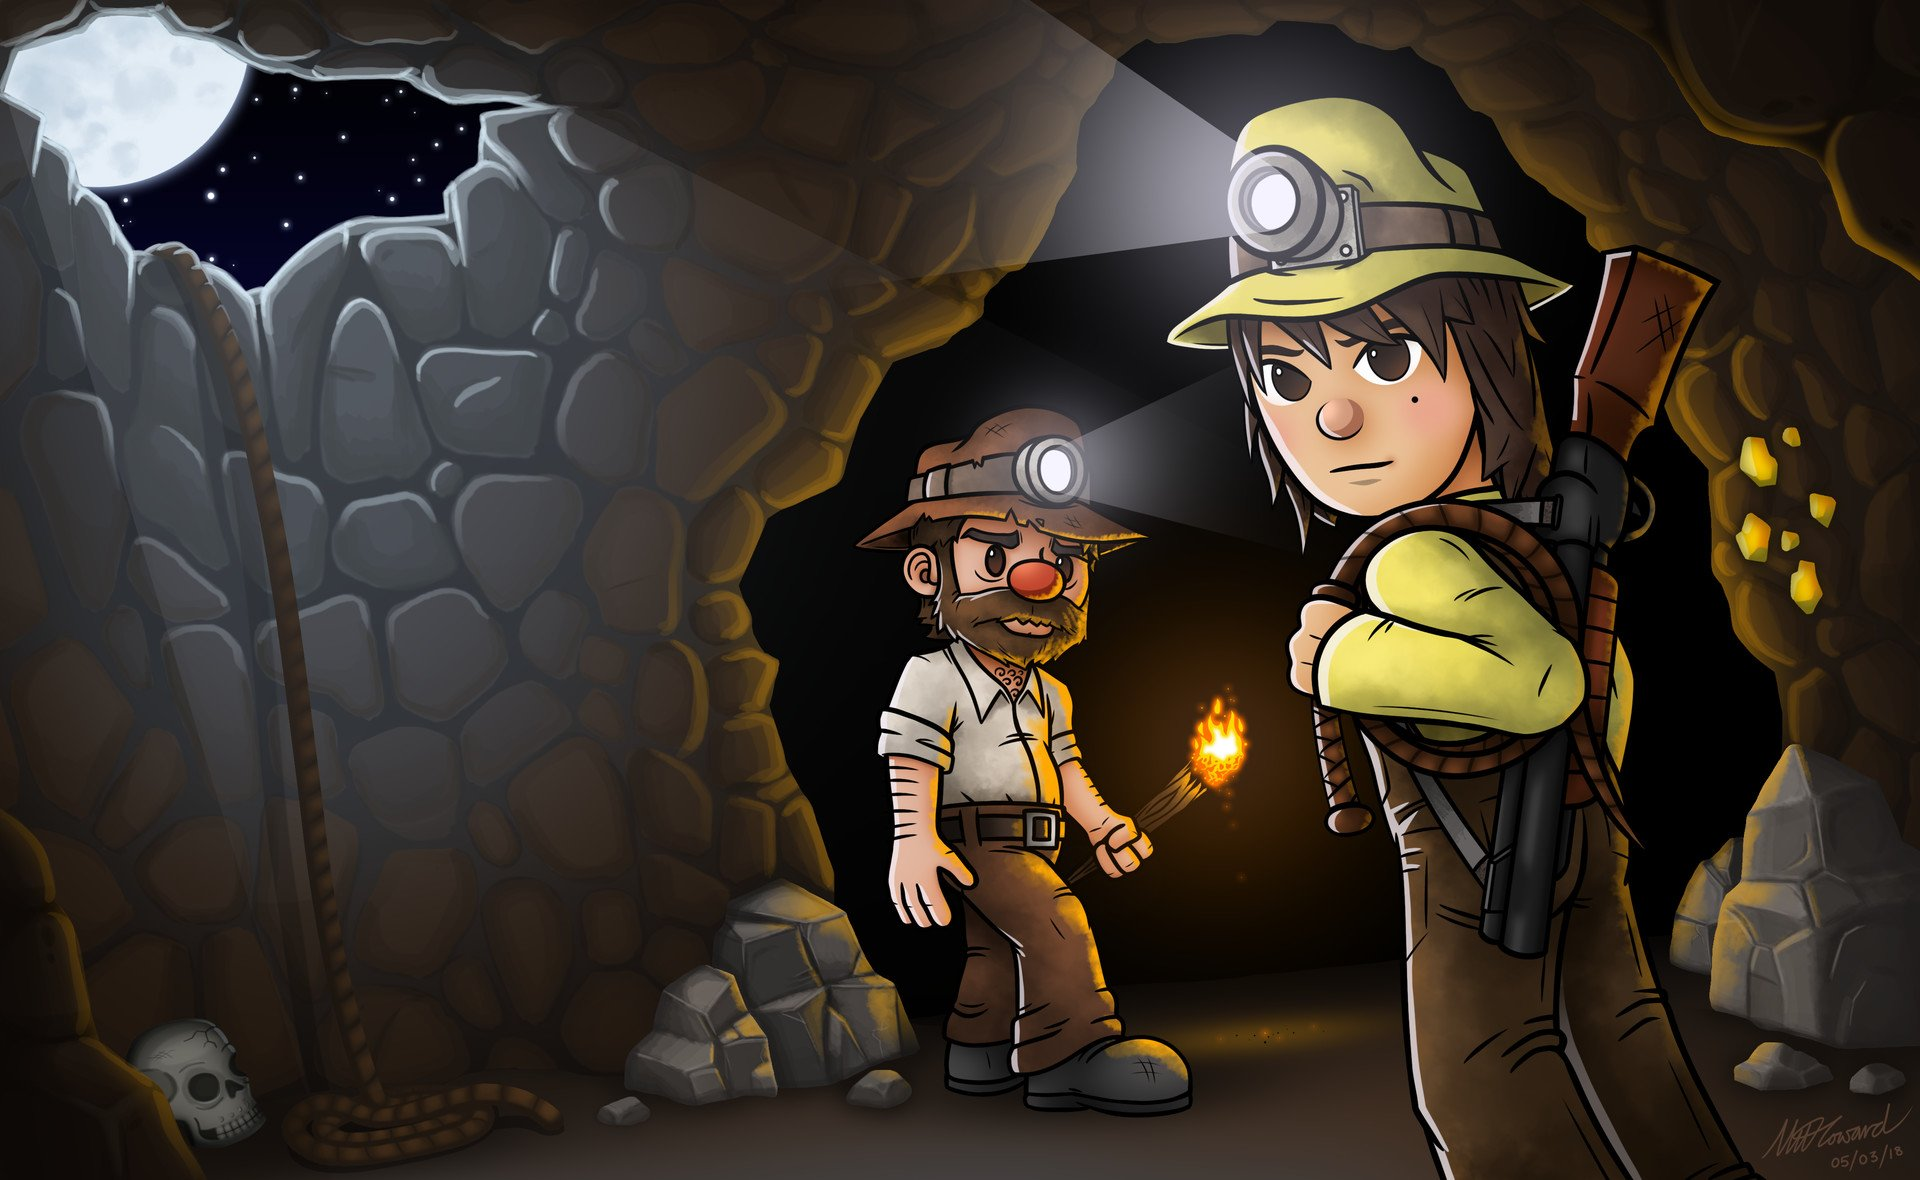 spelunky 2 gets new gameplay trailer 2019 release date allgamers